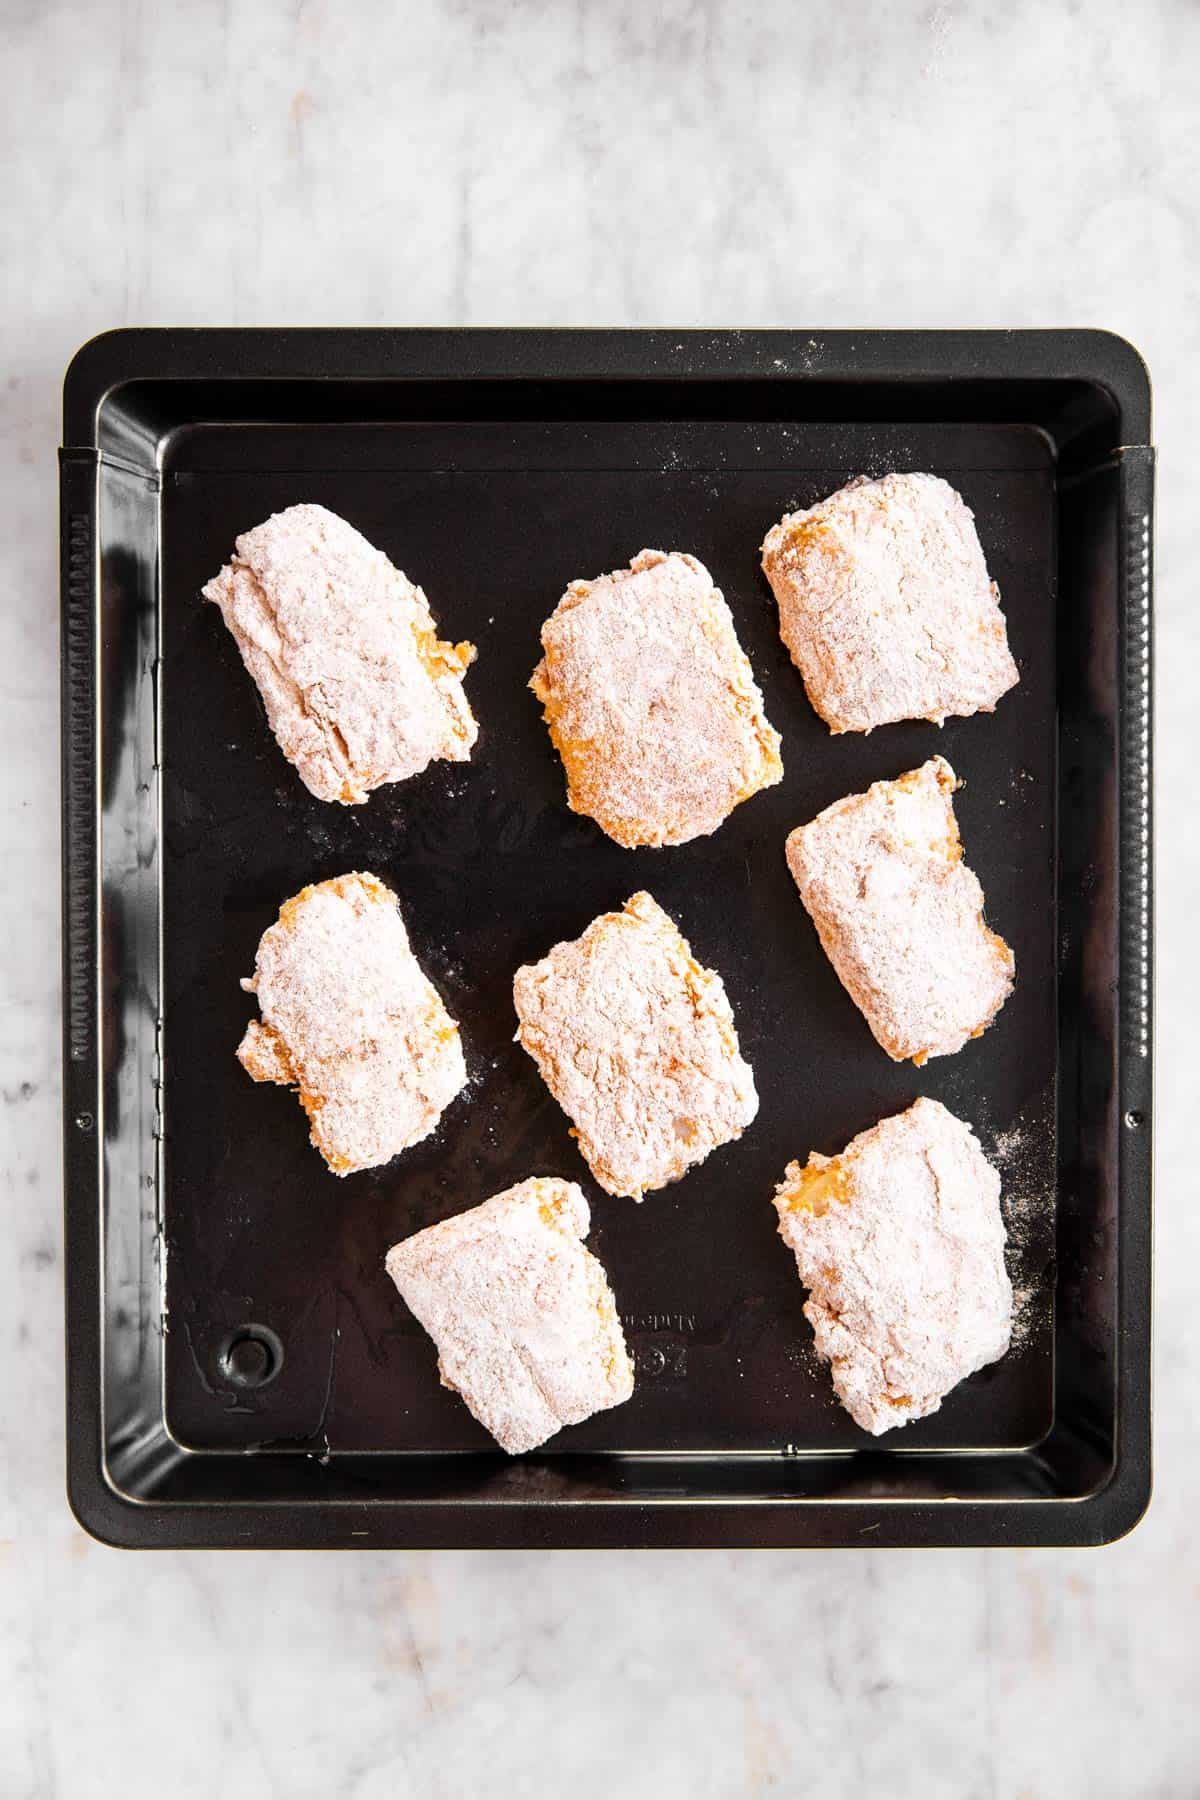 breaded fish pieces on black pan